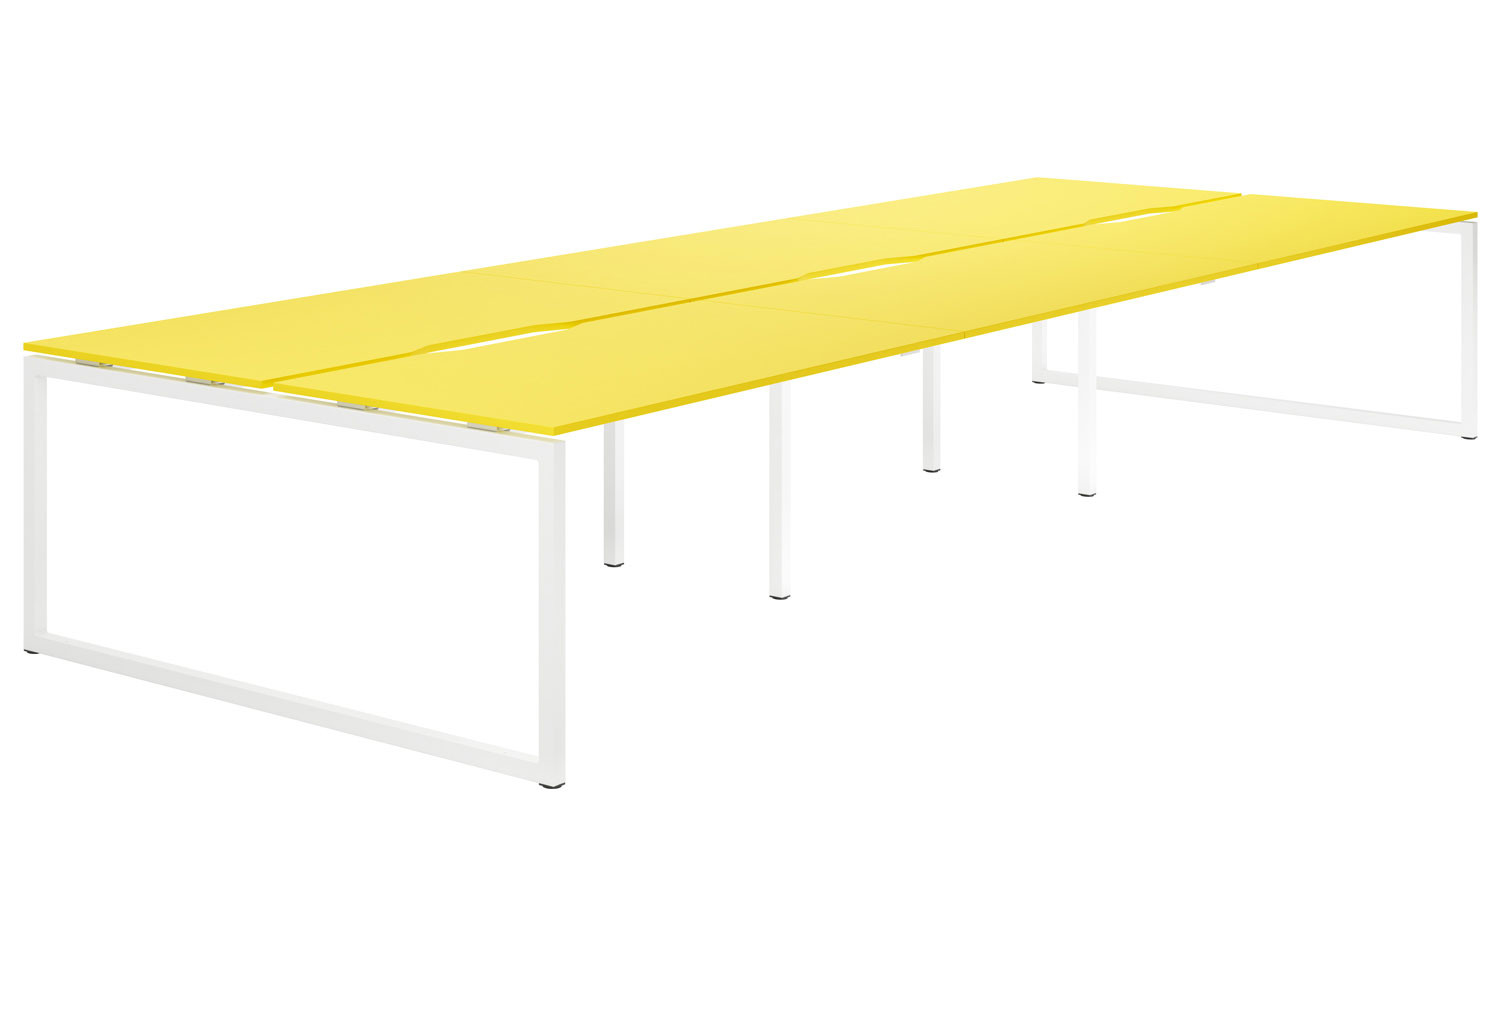 Campos Hooped Leg 6 Person Back To Back Bench Desk (Yellow)